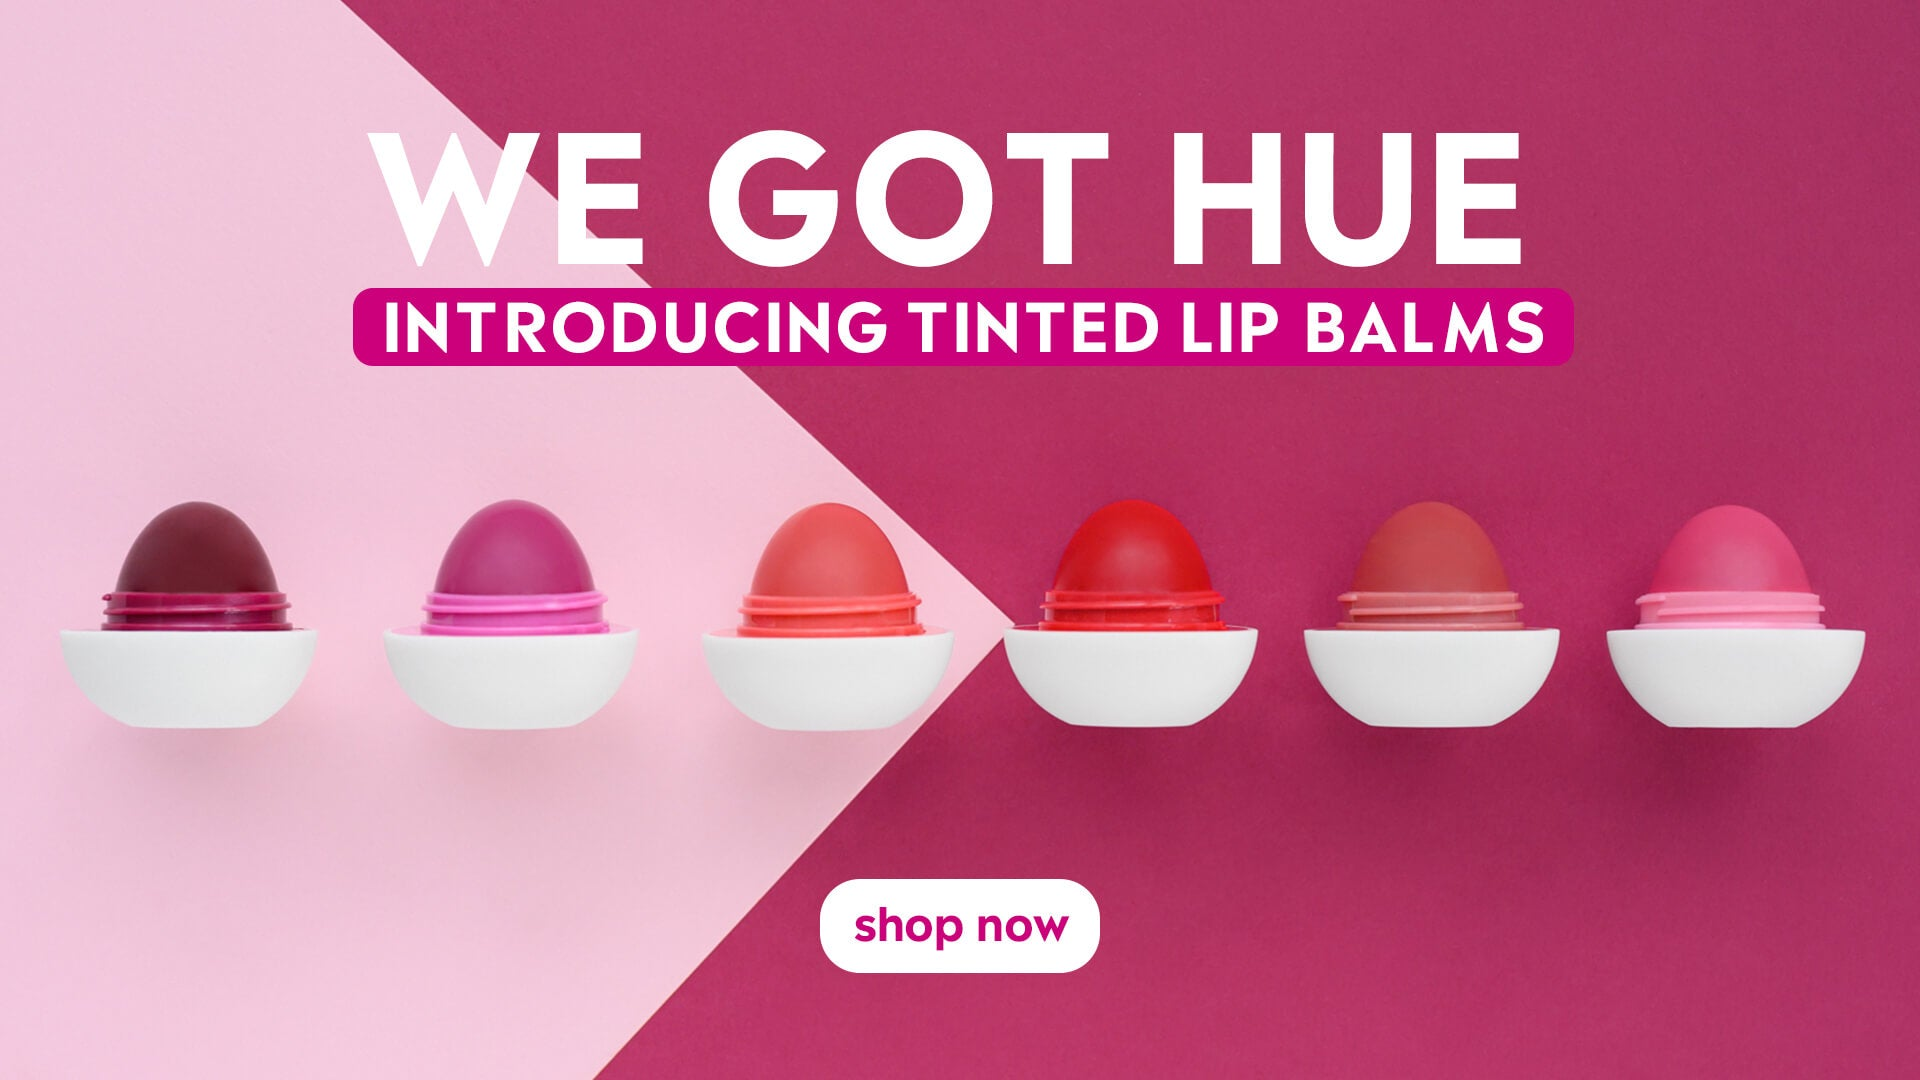 WE GOT HUE. INTRODUCING TINTED LIP BALMS.